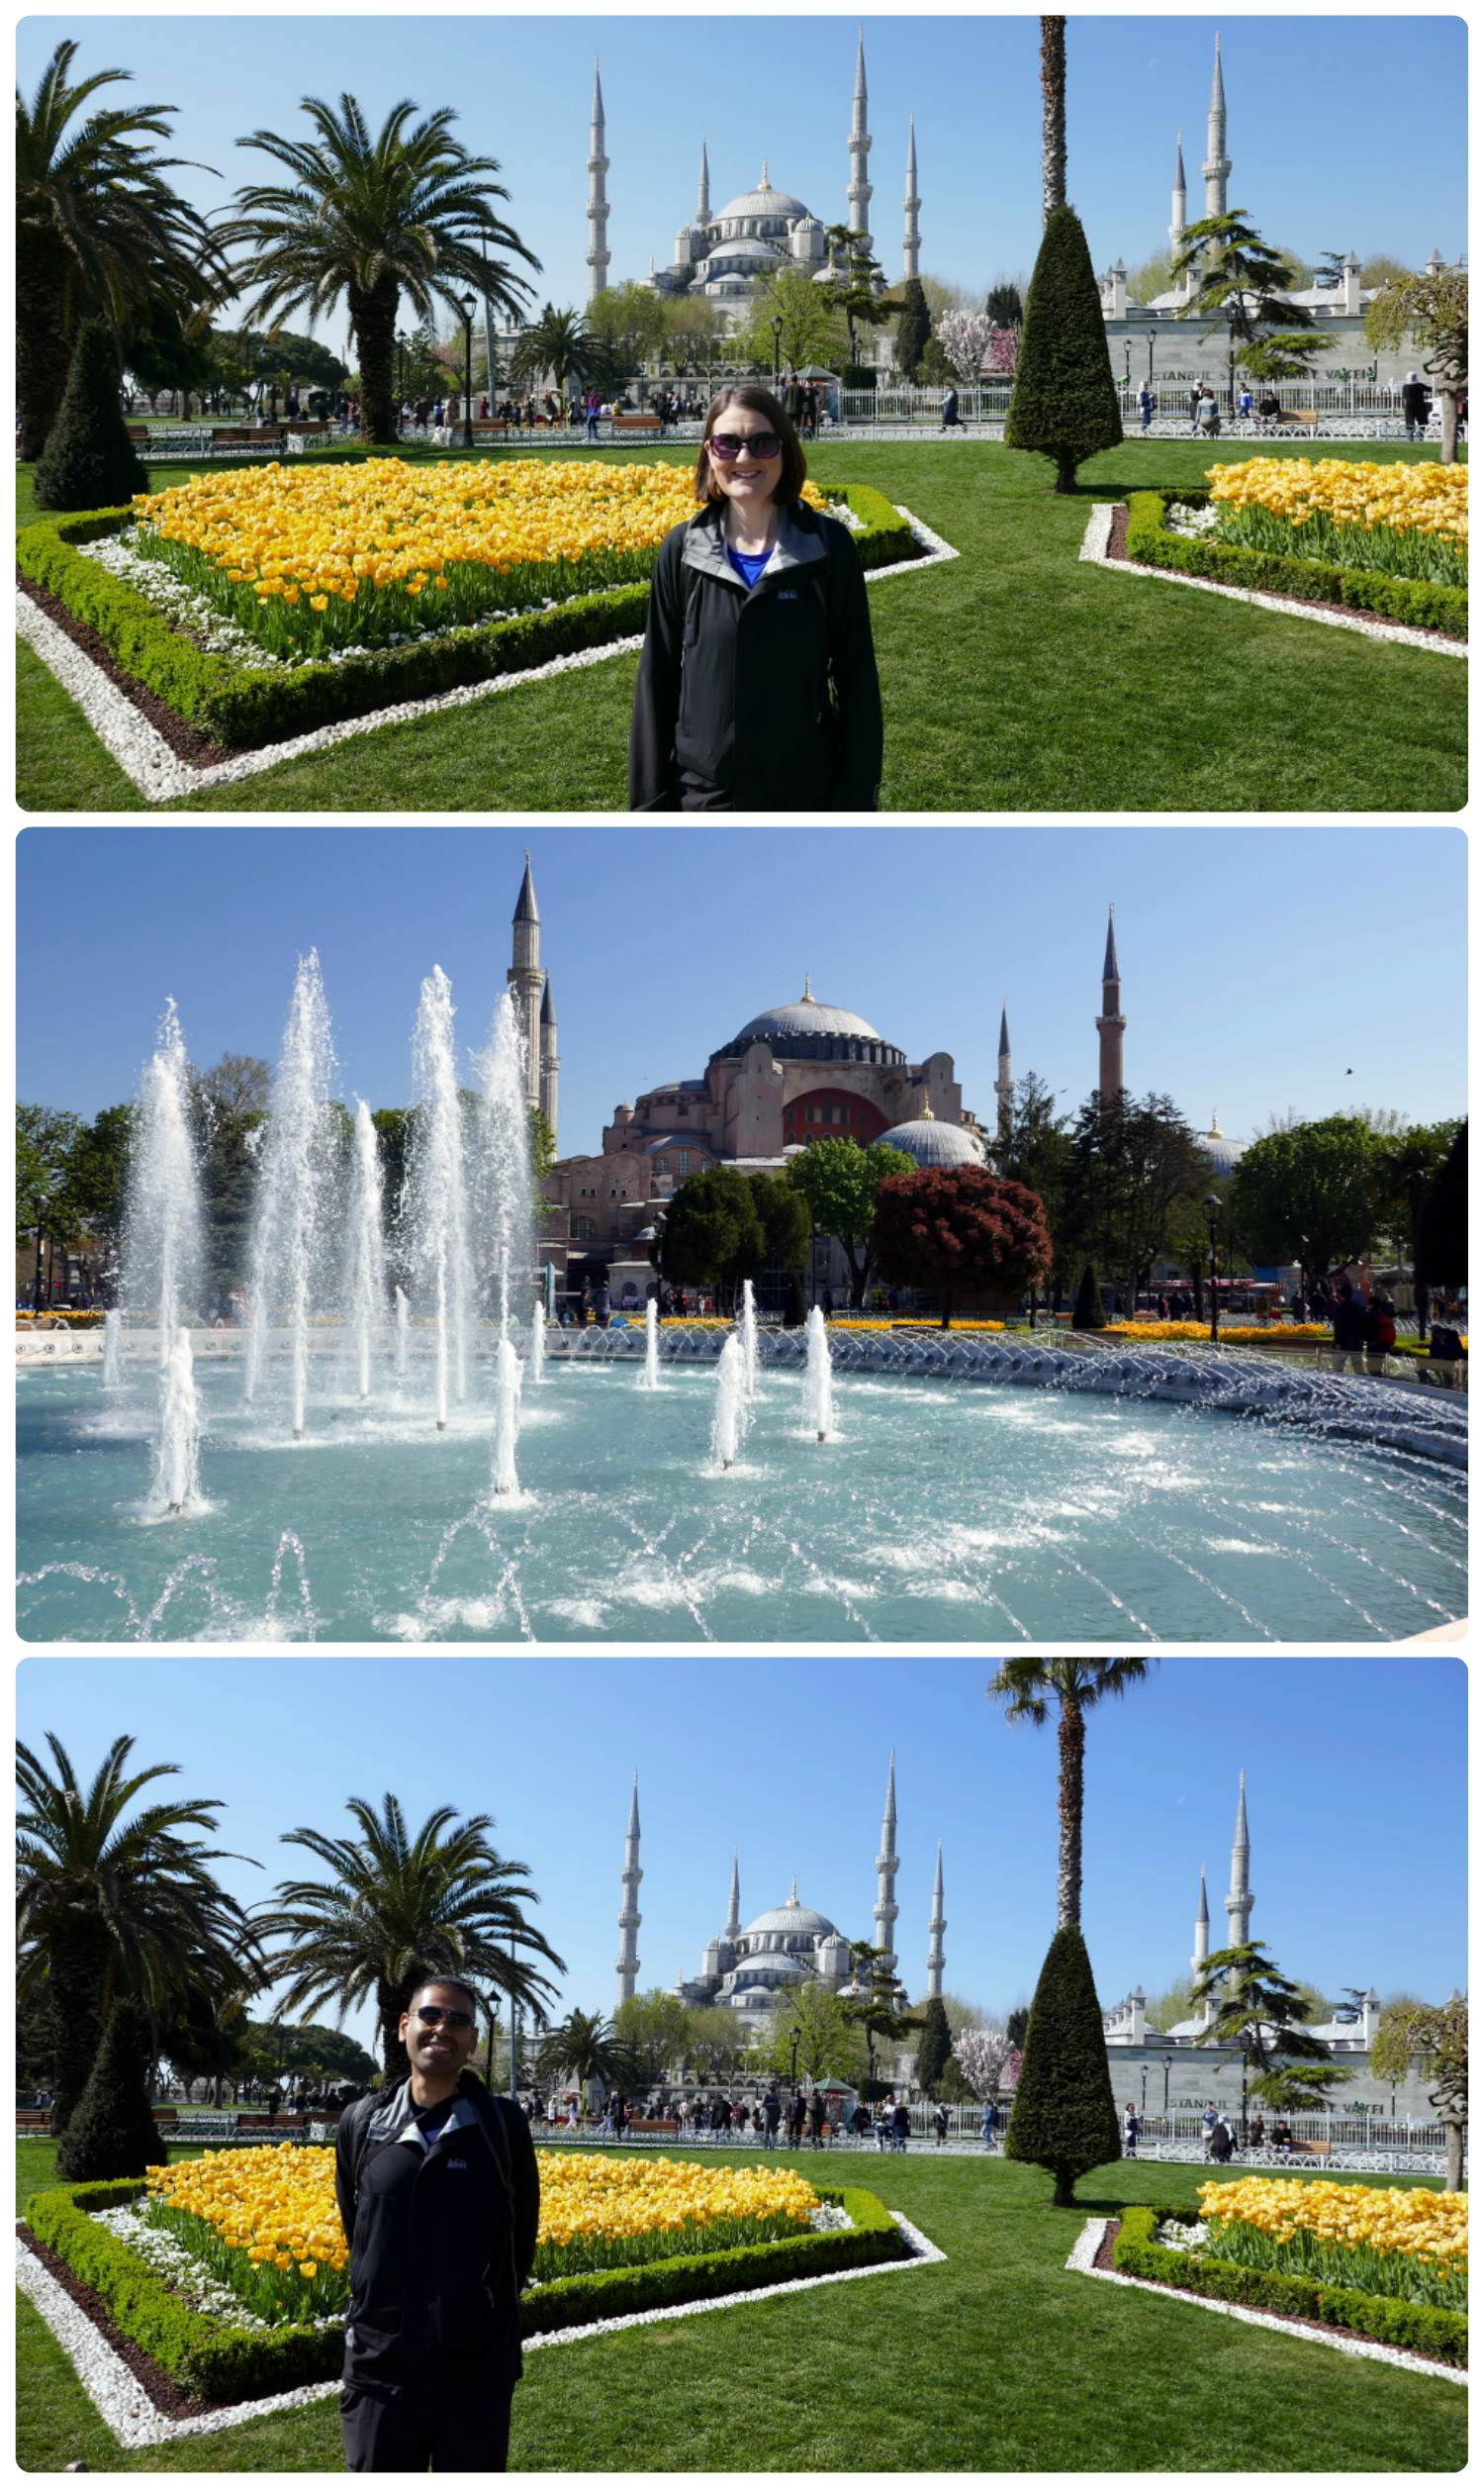 All images are taken in Sultanahmet Sqaure. Top to bottom: Shannon with the Blue Mosque in the background, fountain and the Hagia Sophia in the background, Sergio with the Blue Mosque in the background.